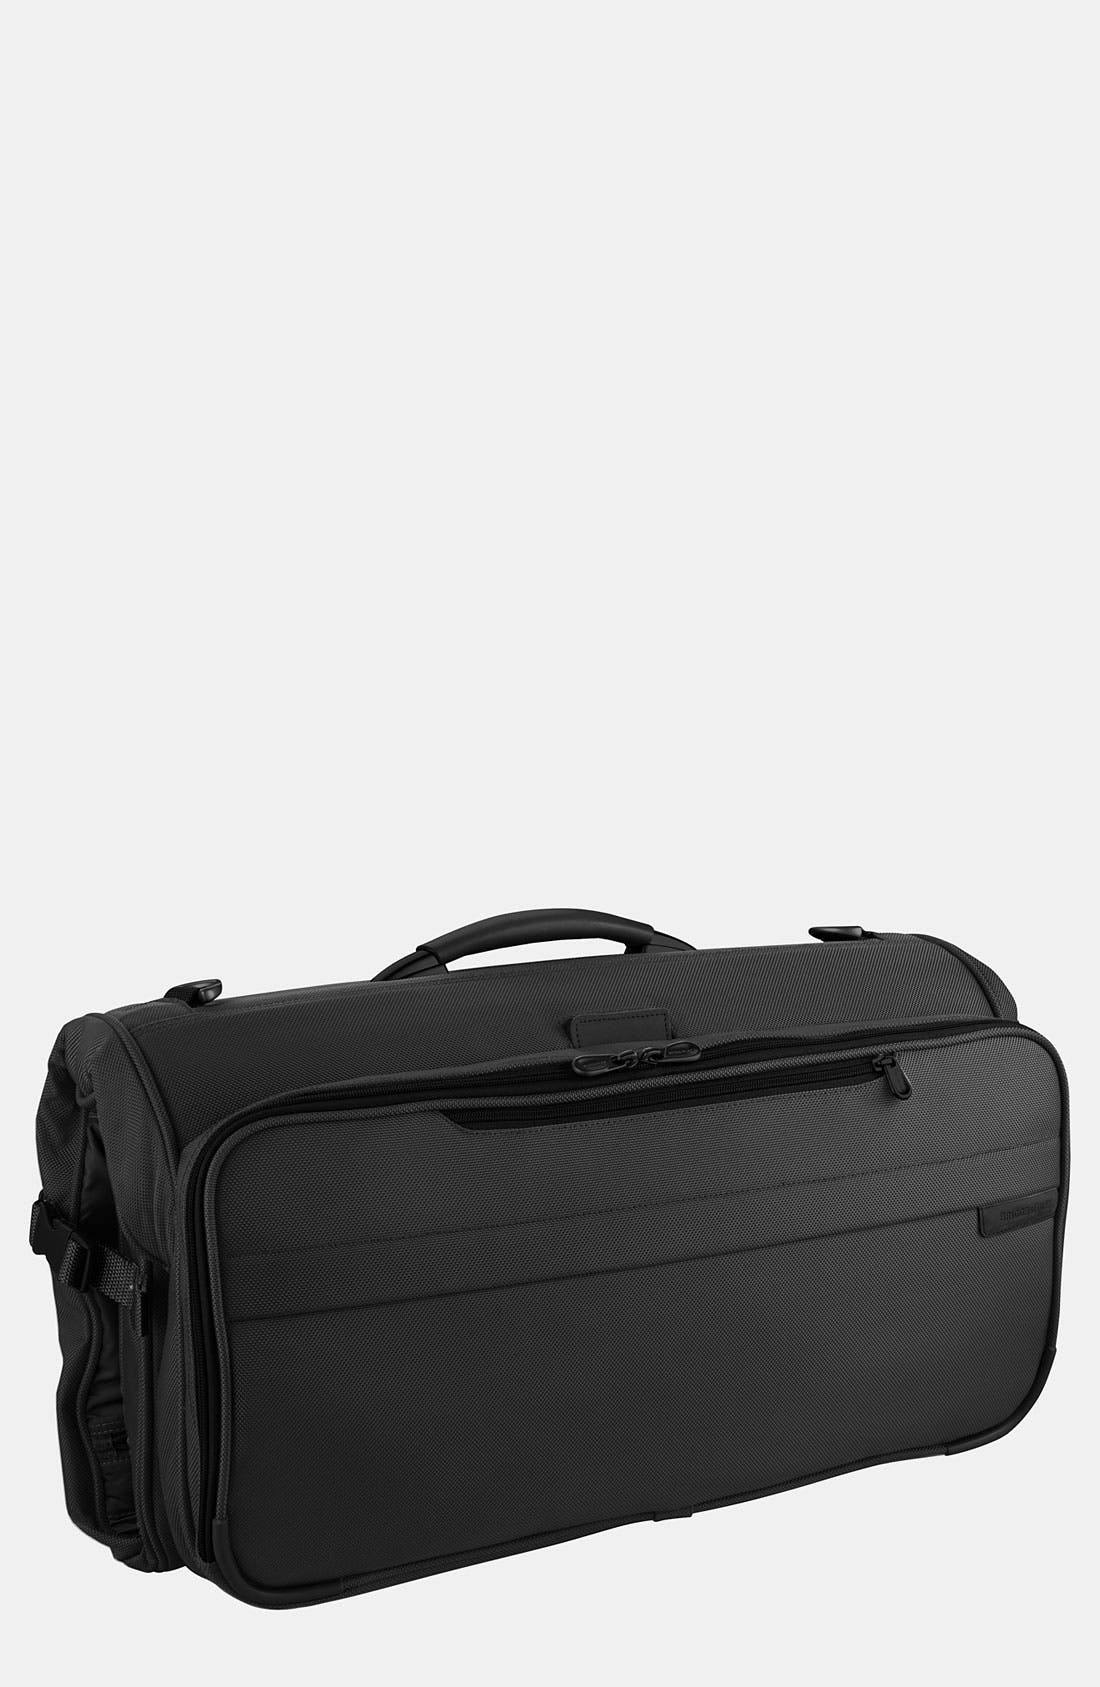 Baseline - Compact Garment Bag,                         Main,                         color, Black